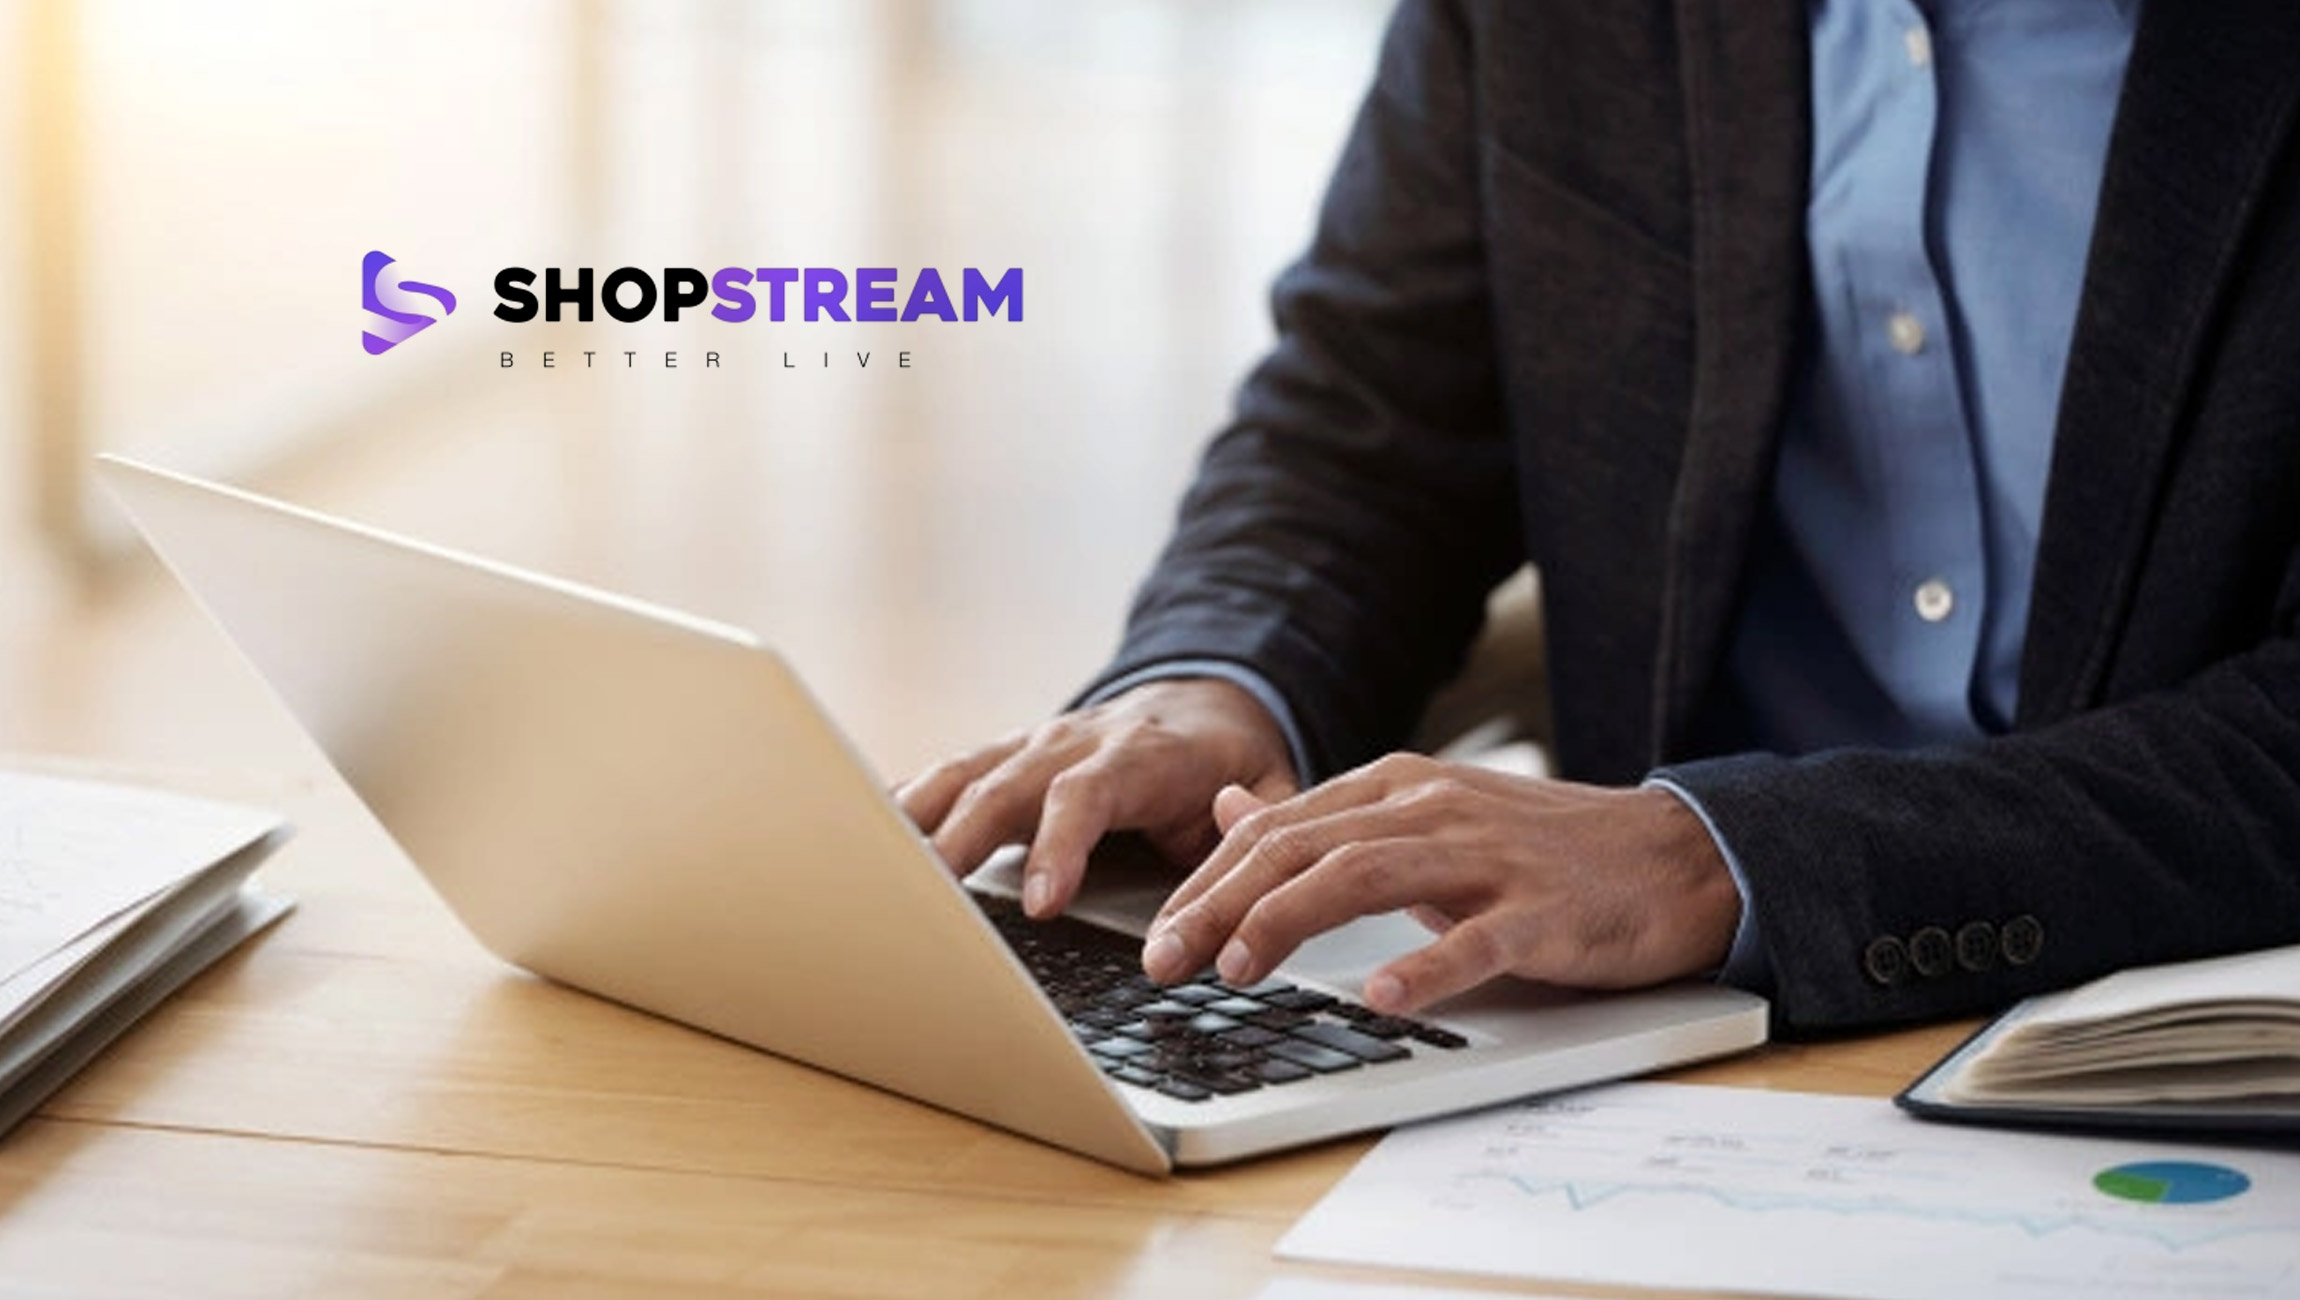 New Global Start up Shopstream Rolls Out B2C Live Social Marketplace